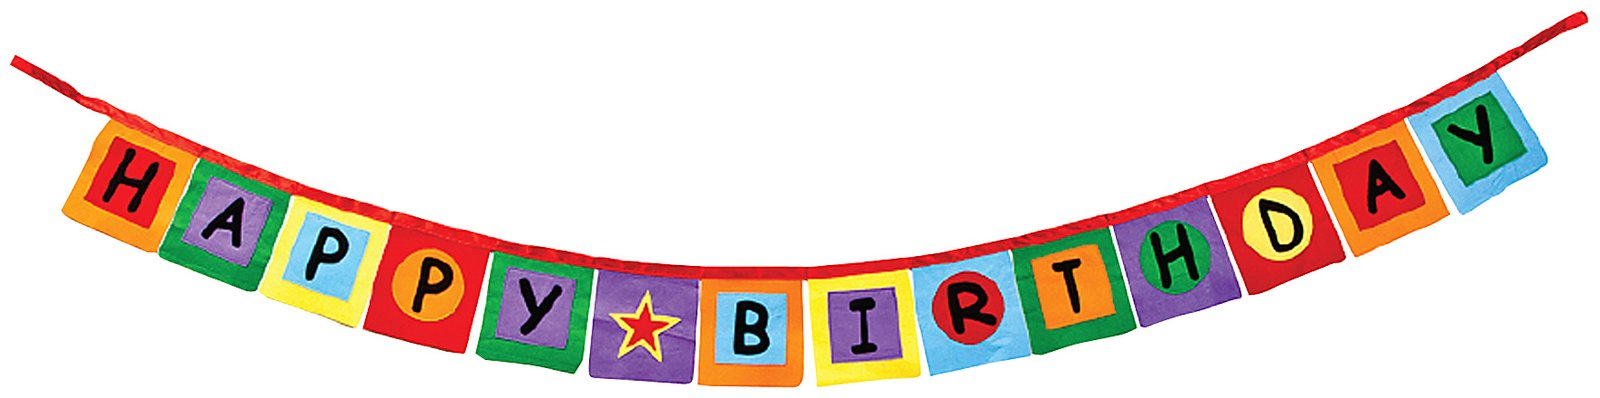 Birthday clipart pennant Art Clipart Pennant on Free